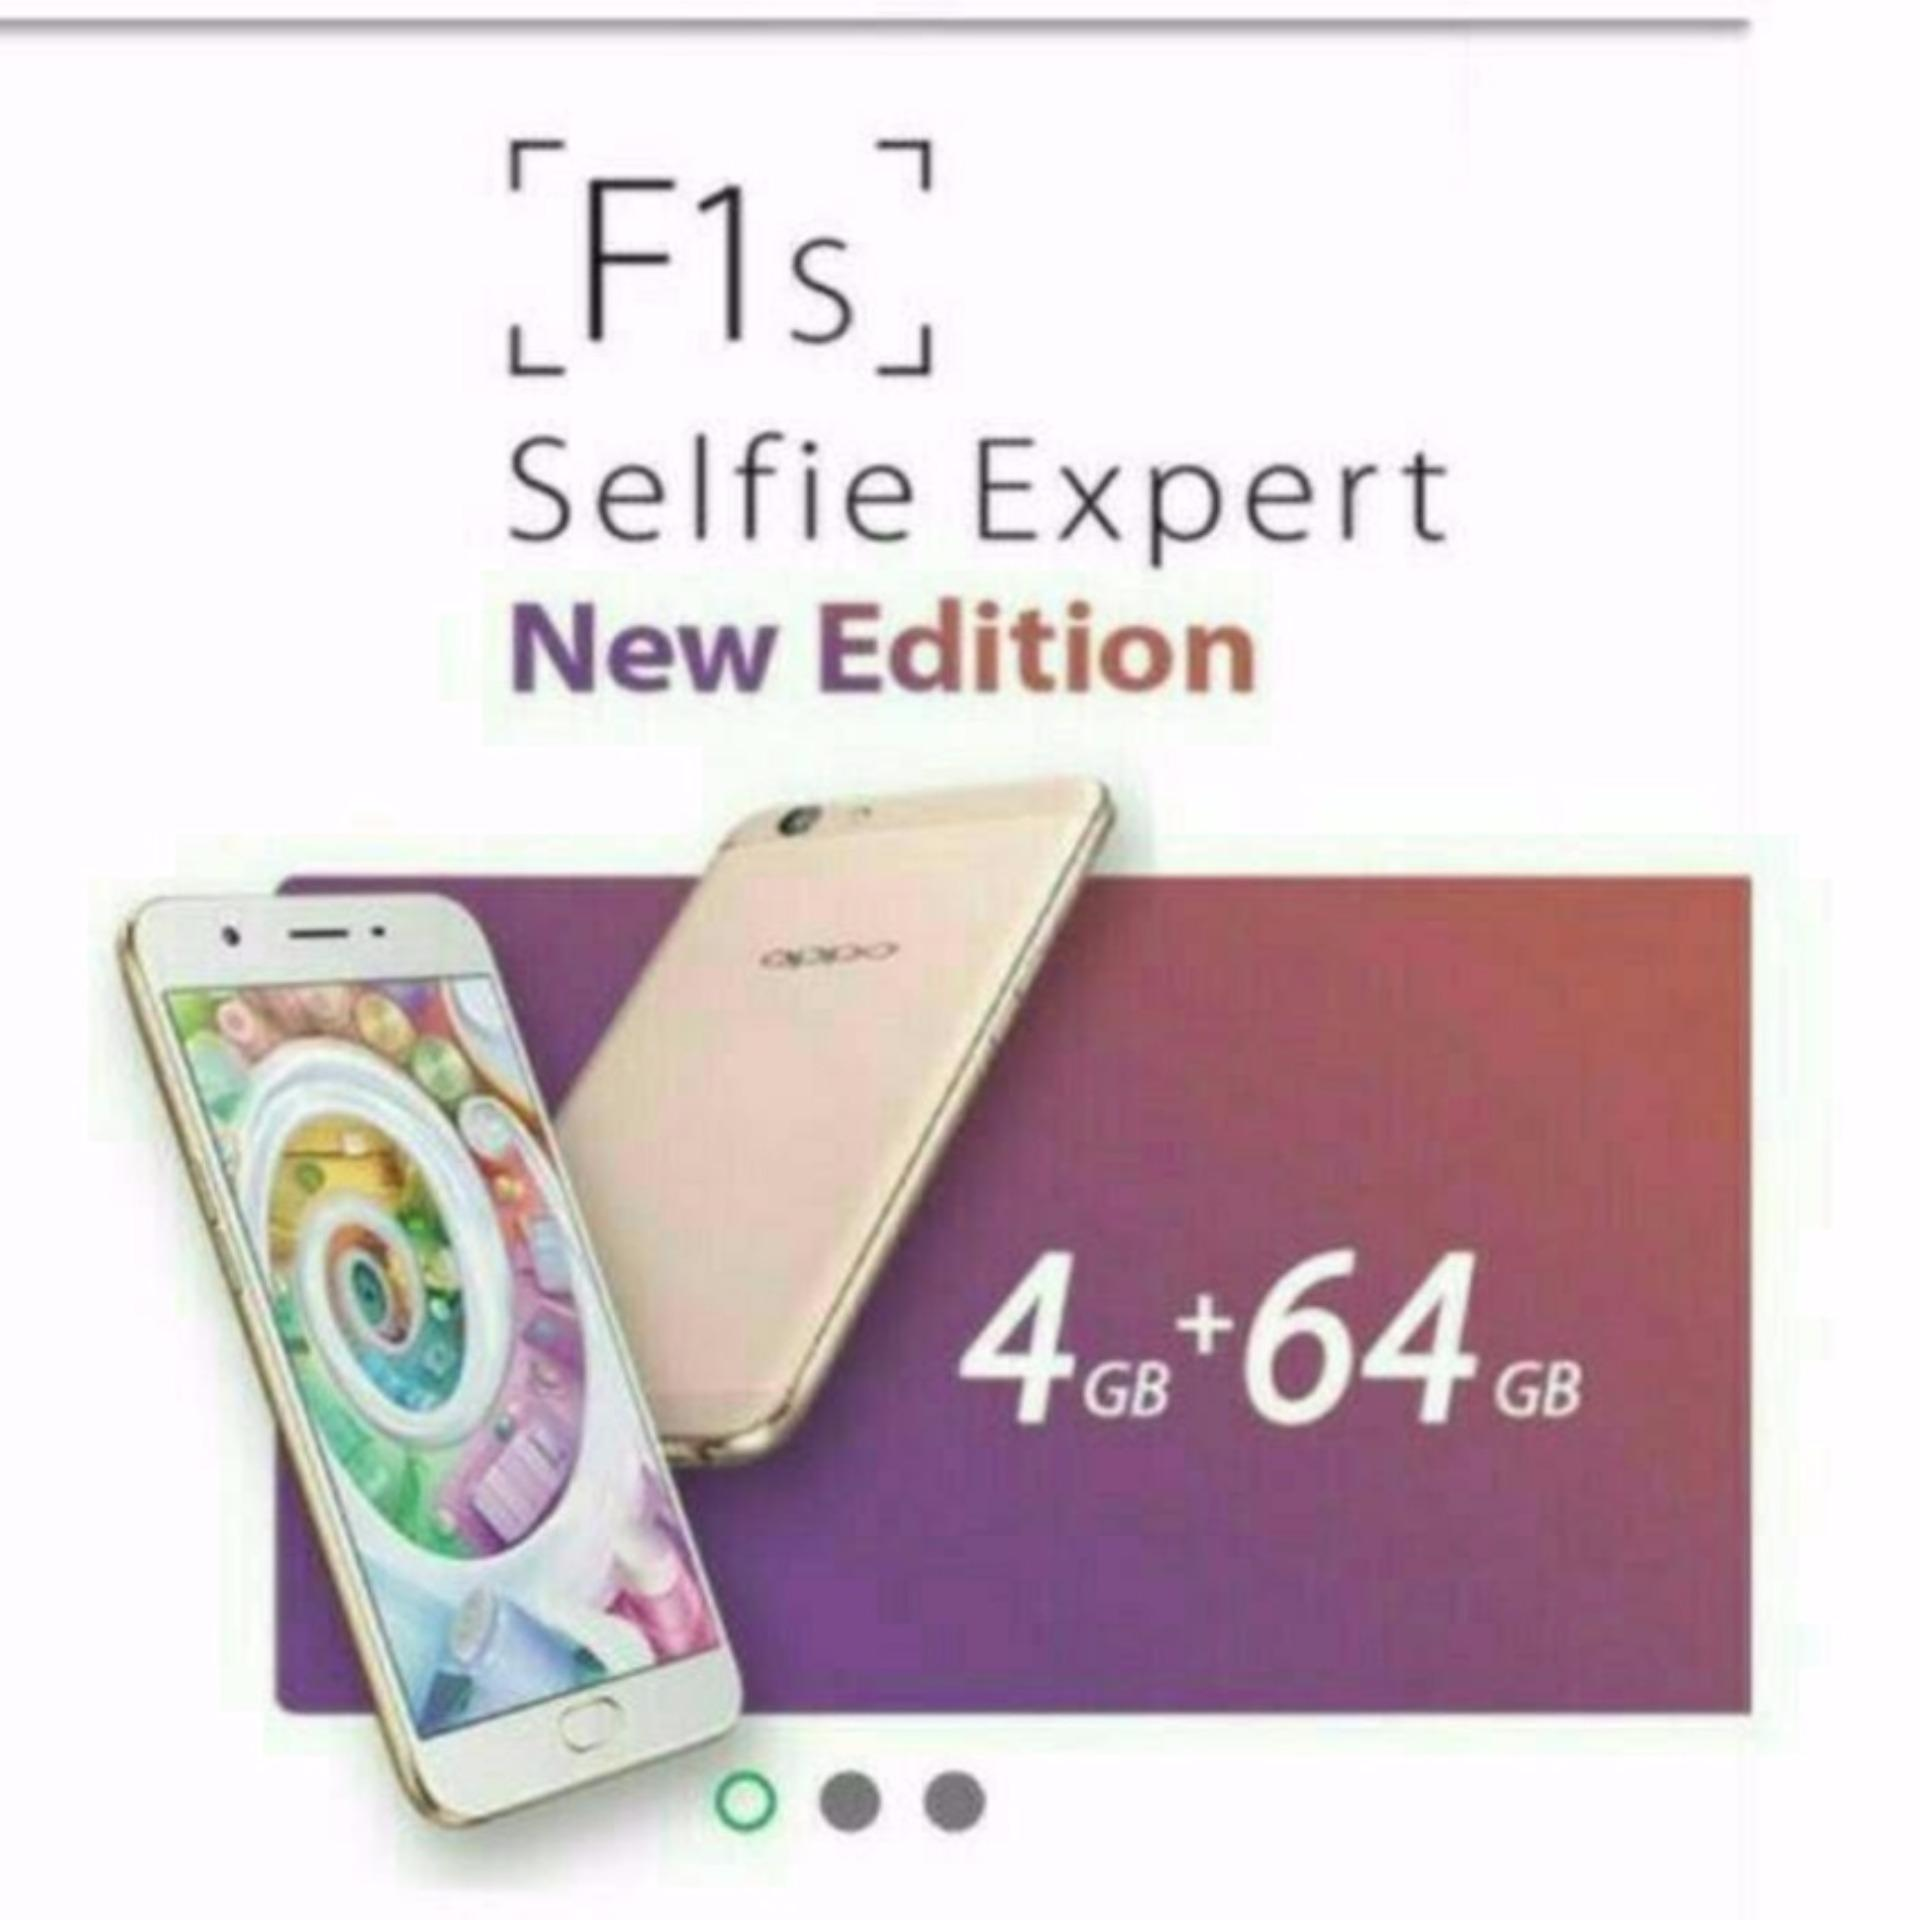 Jual Cepat Oppo F1S Plus Ram 4Gb Room 64Gb Gold Rose